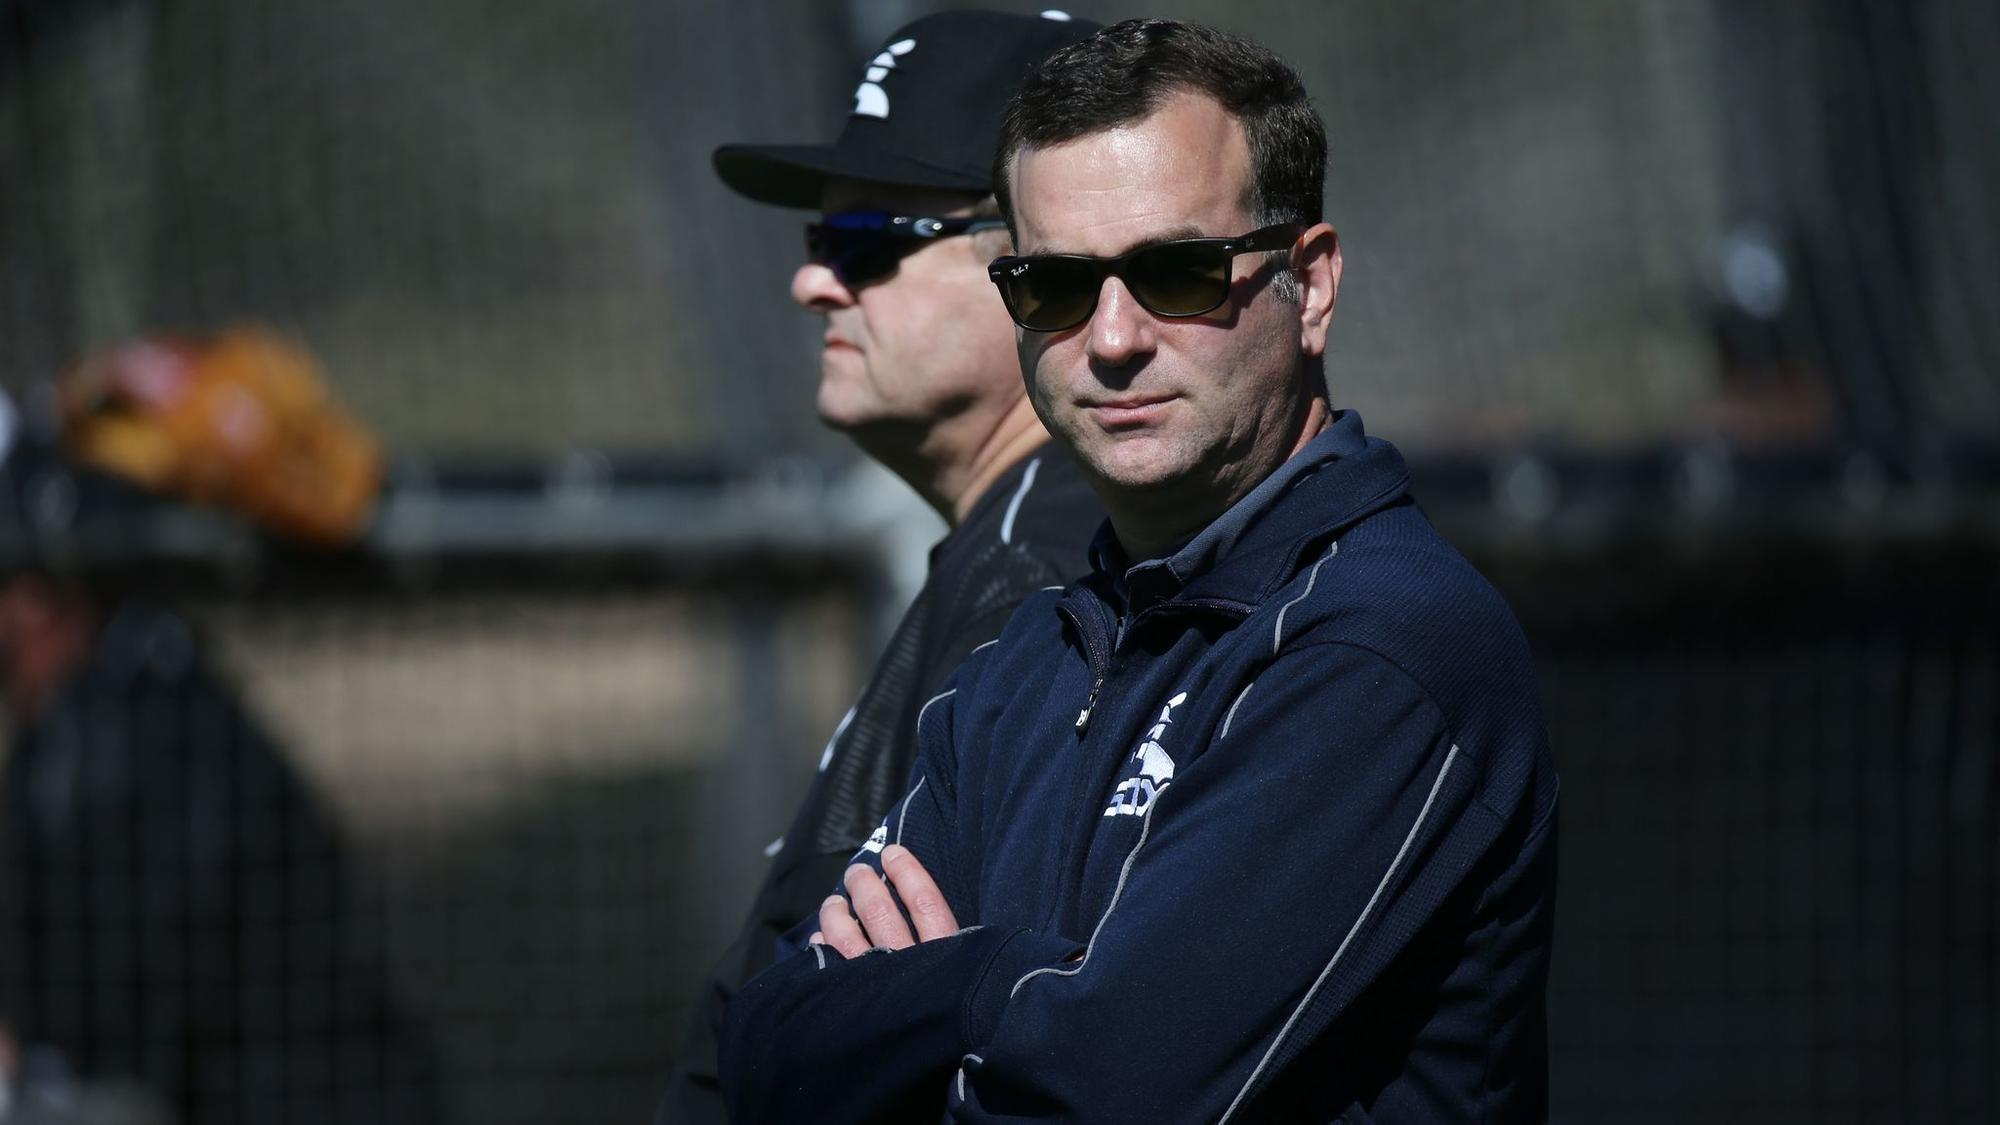 White Sox may pay Rule 5 draft price for upgraded depth